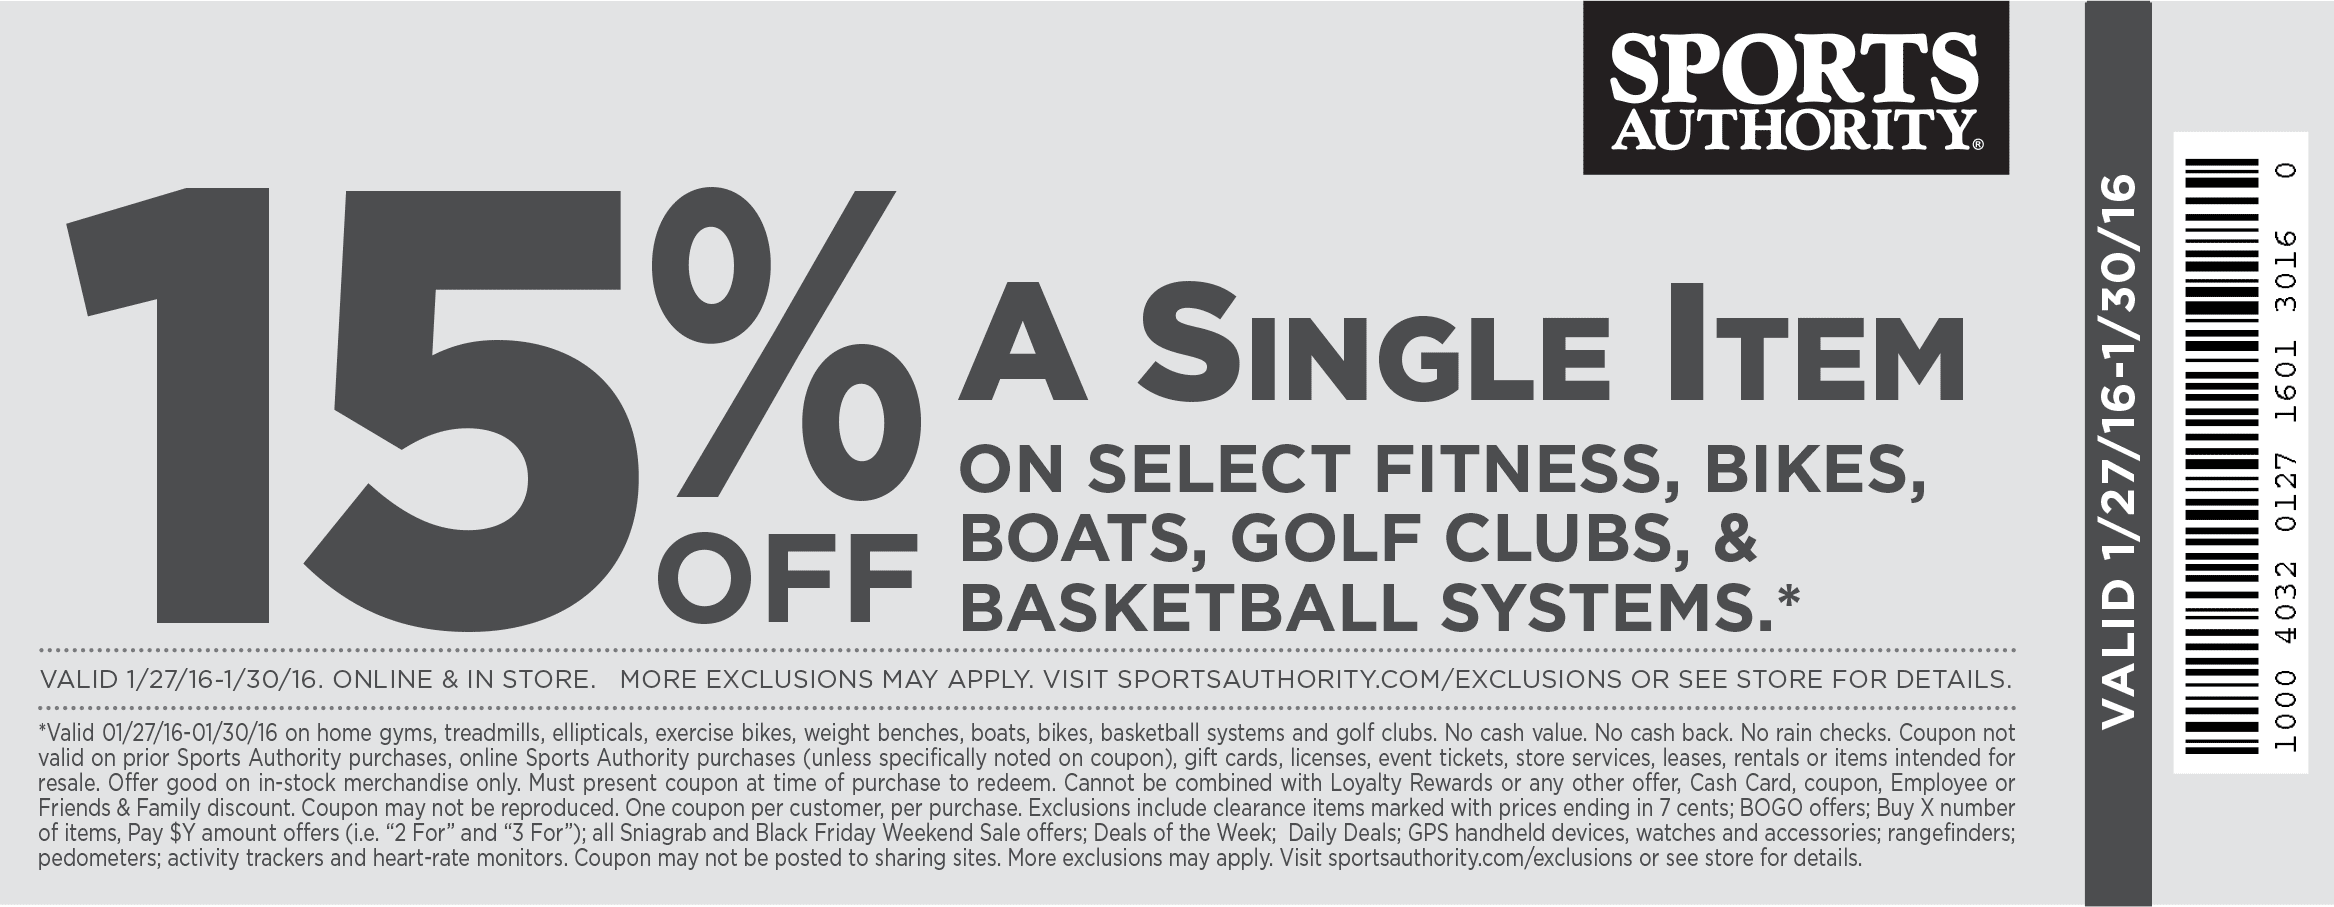 Sports Authority Coupon September 2018 15% off a single big ticket item at Sports Authority, ditto online